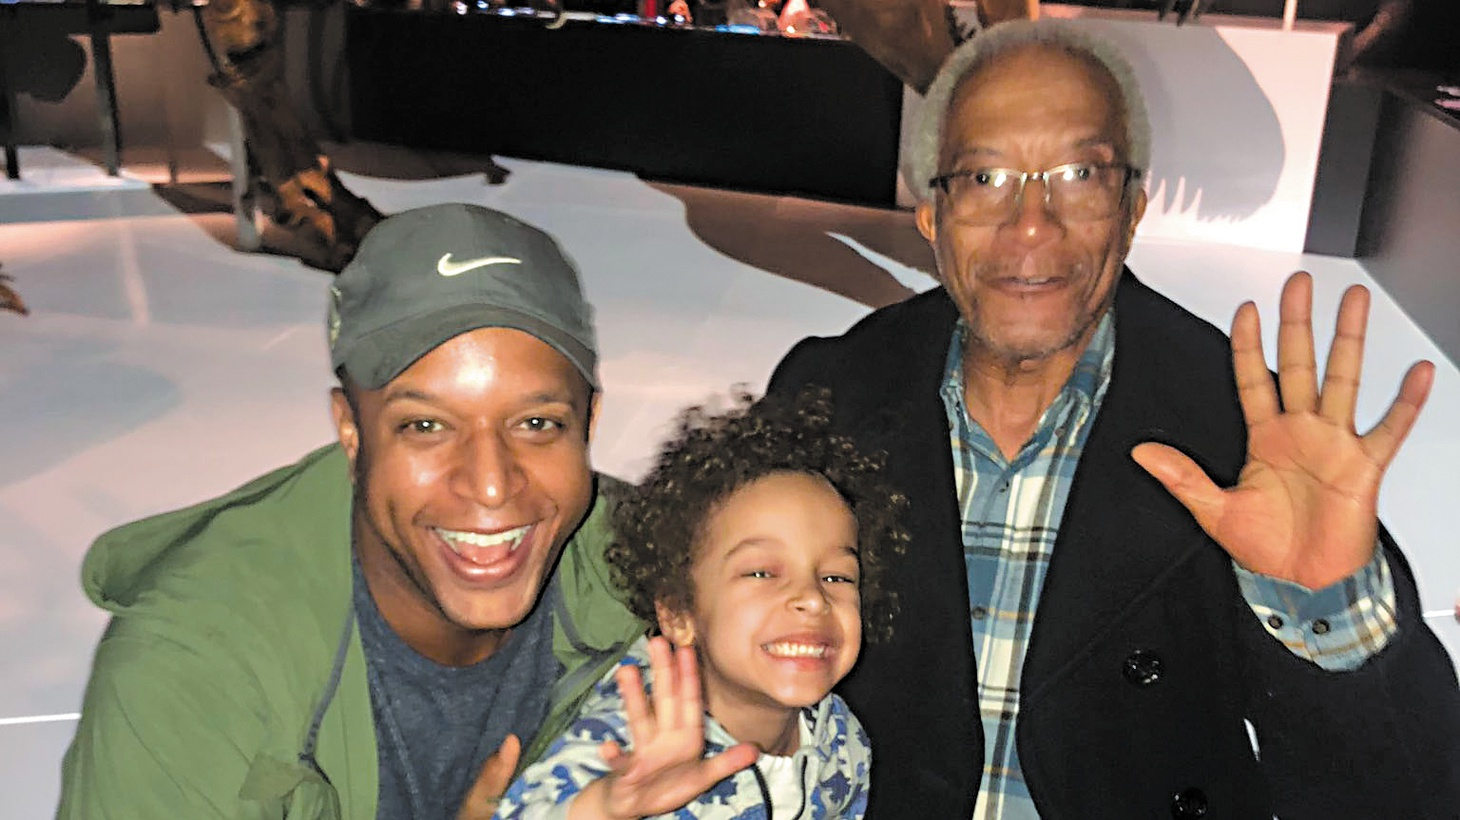 Craig Melvin and his father at the Museum of Natural History.